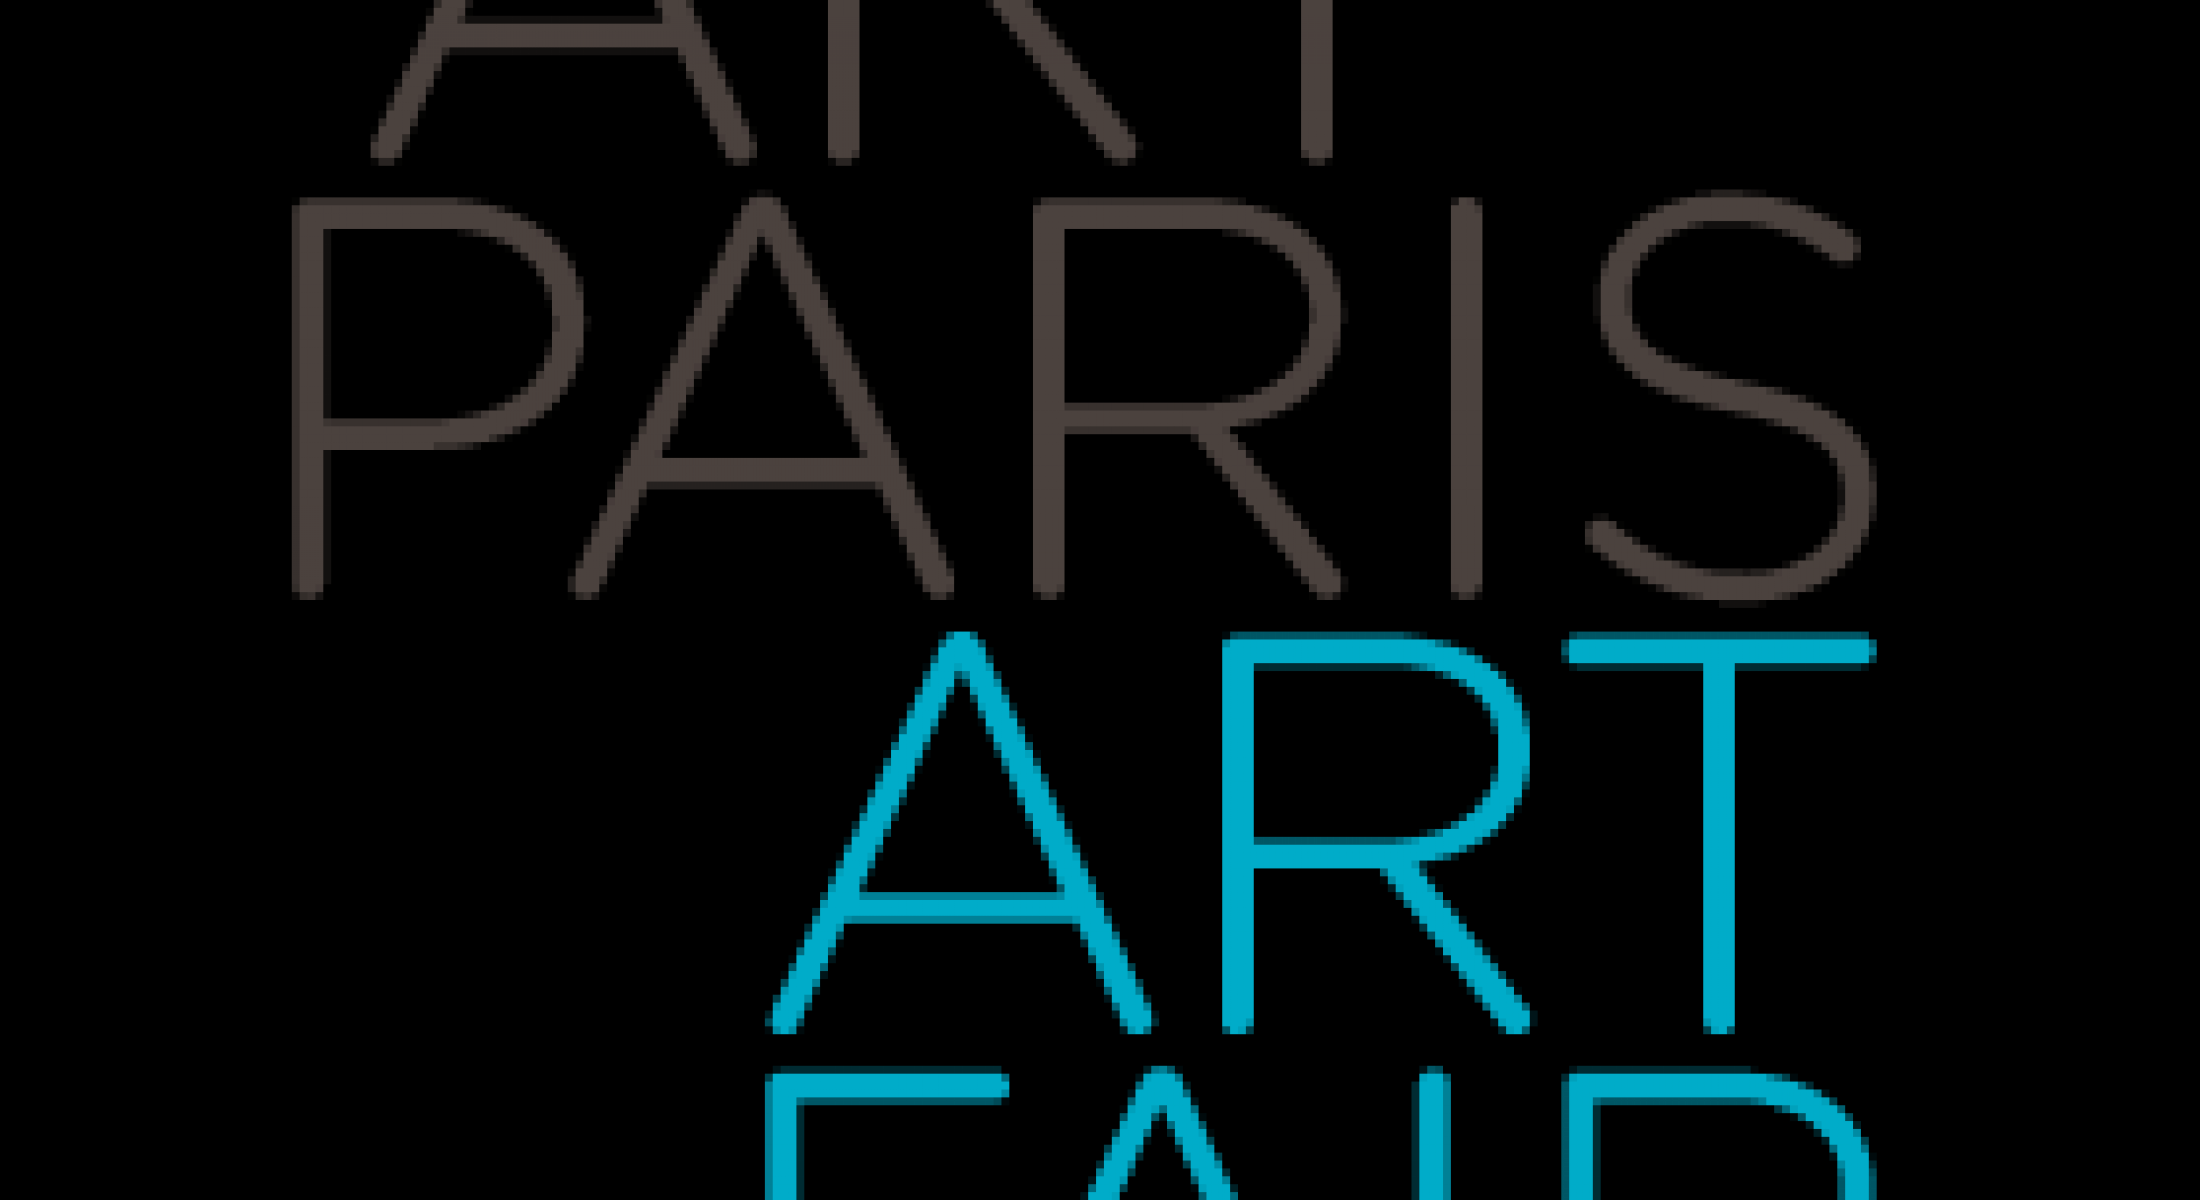 La Collection Courtauld, un regard sur l'impressionnisme